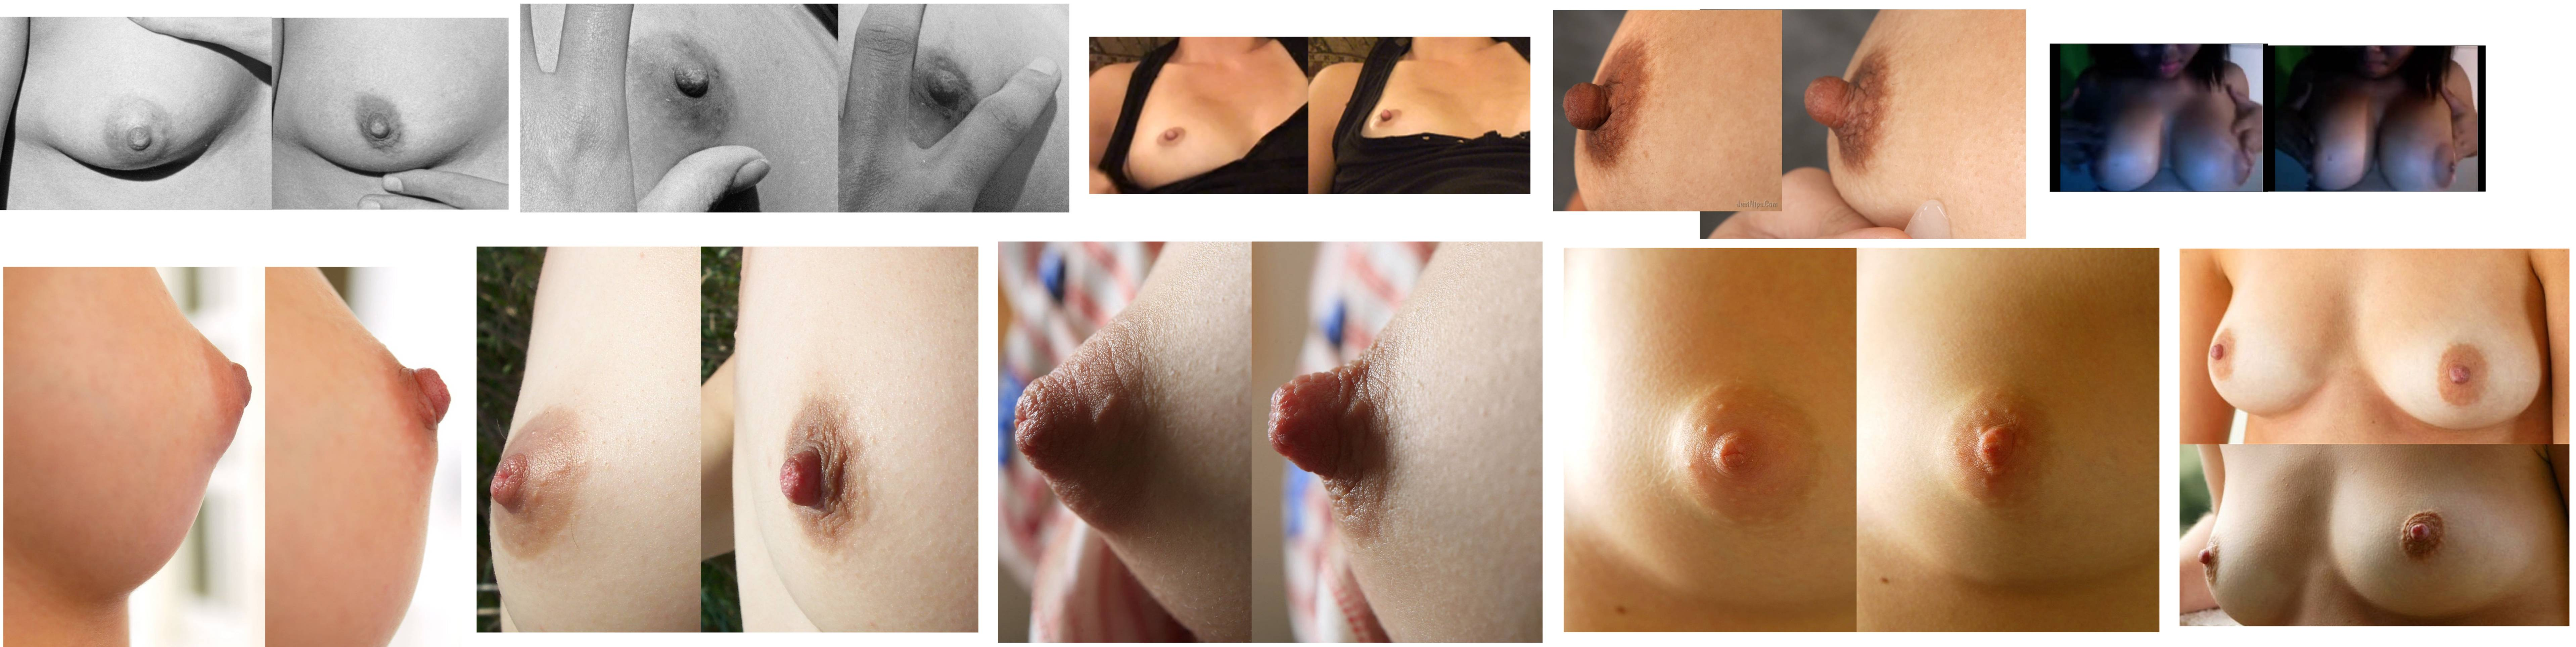 inflation boobs before and after